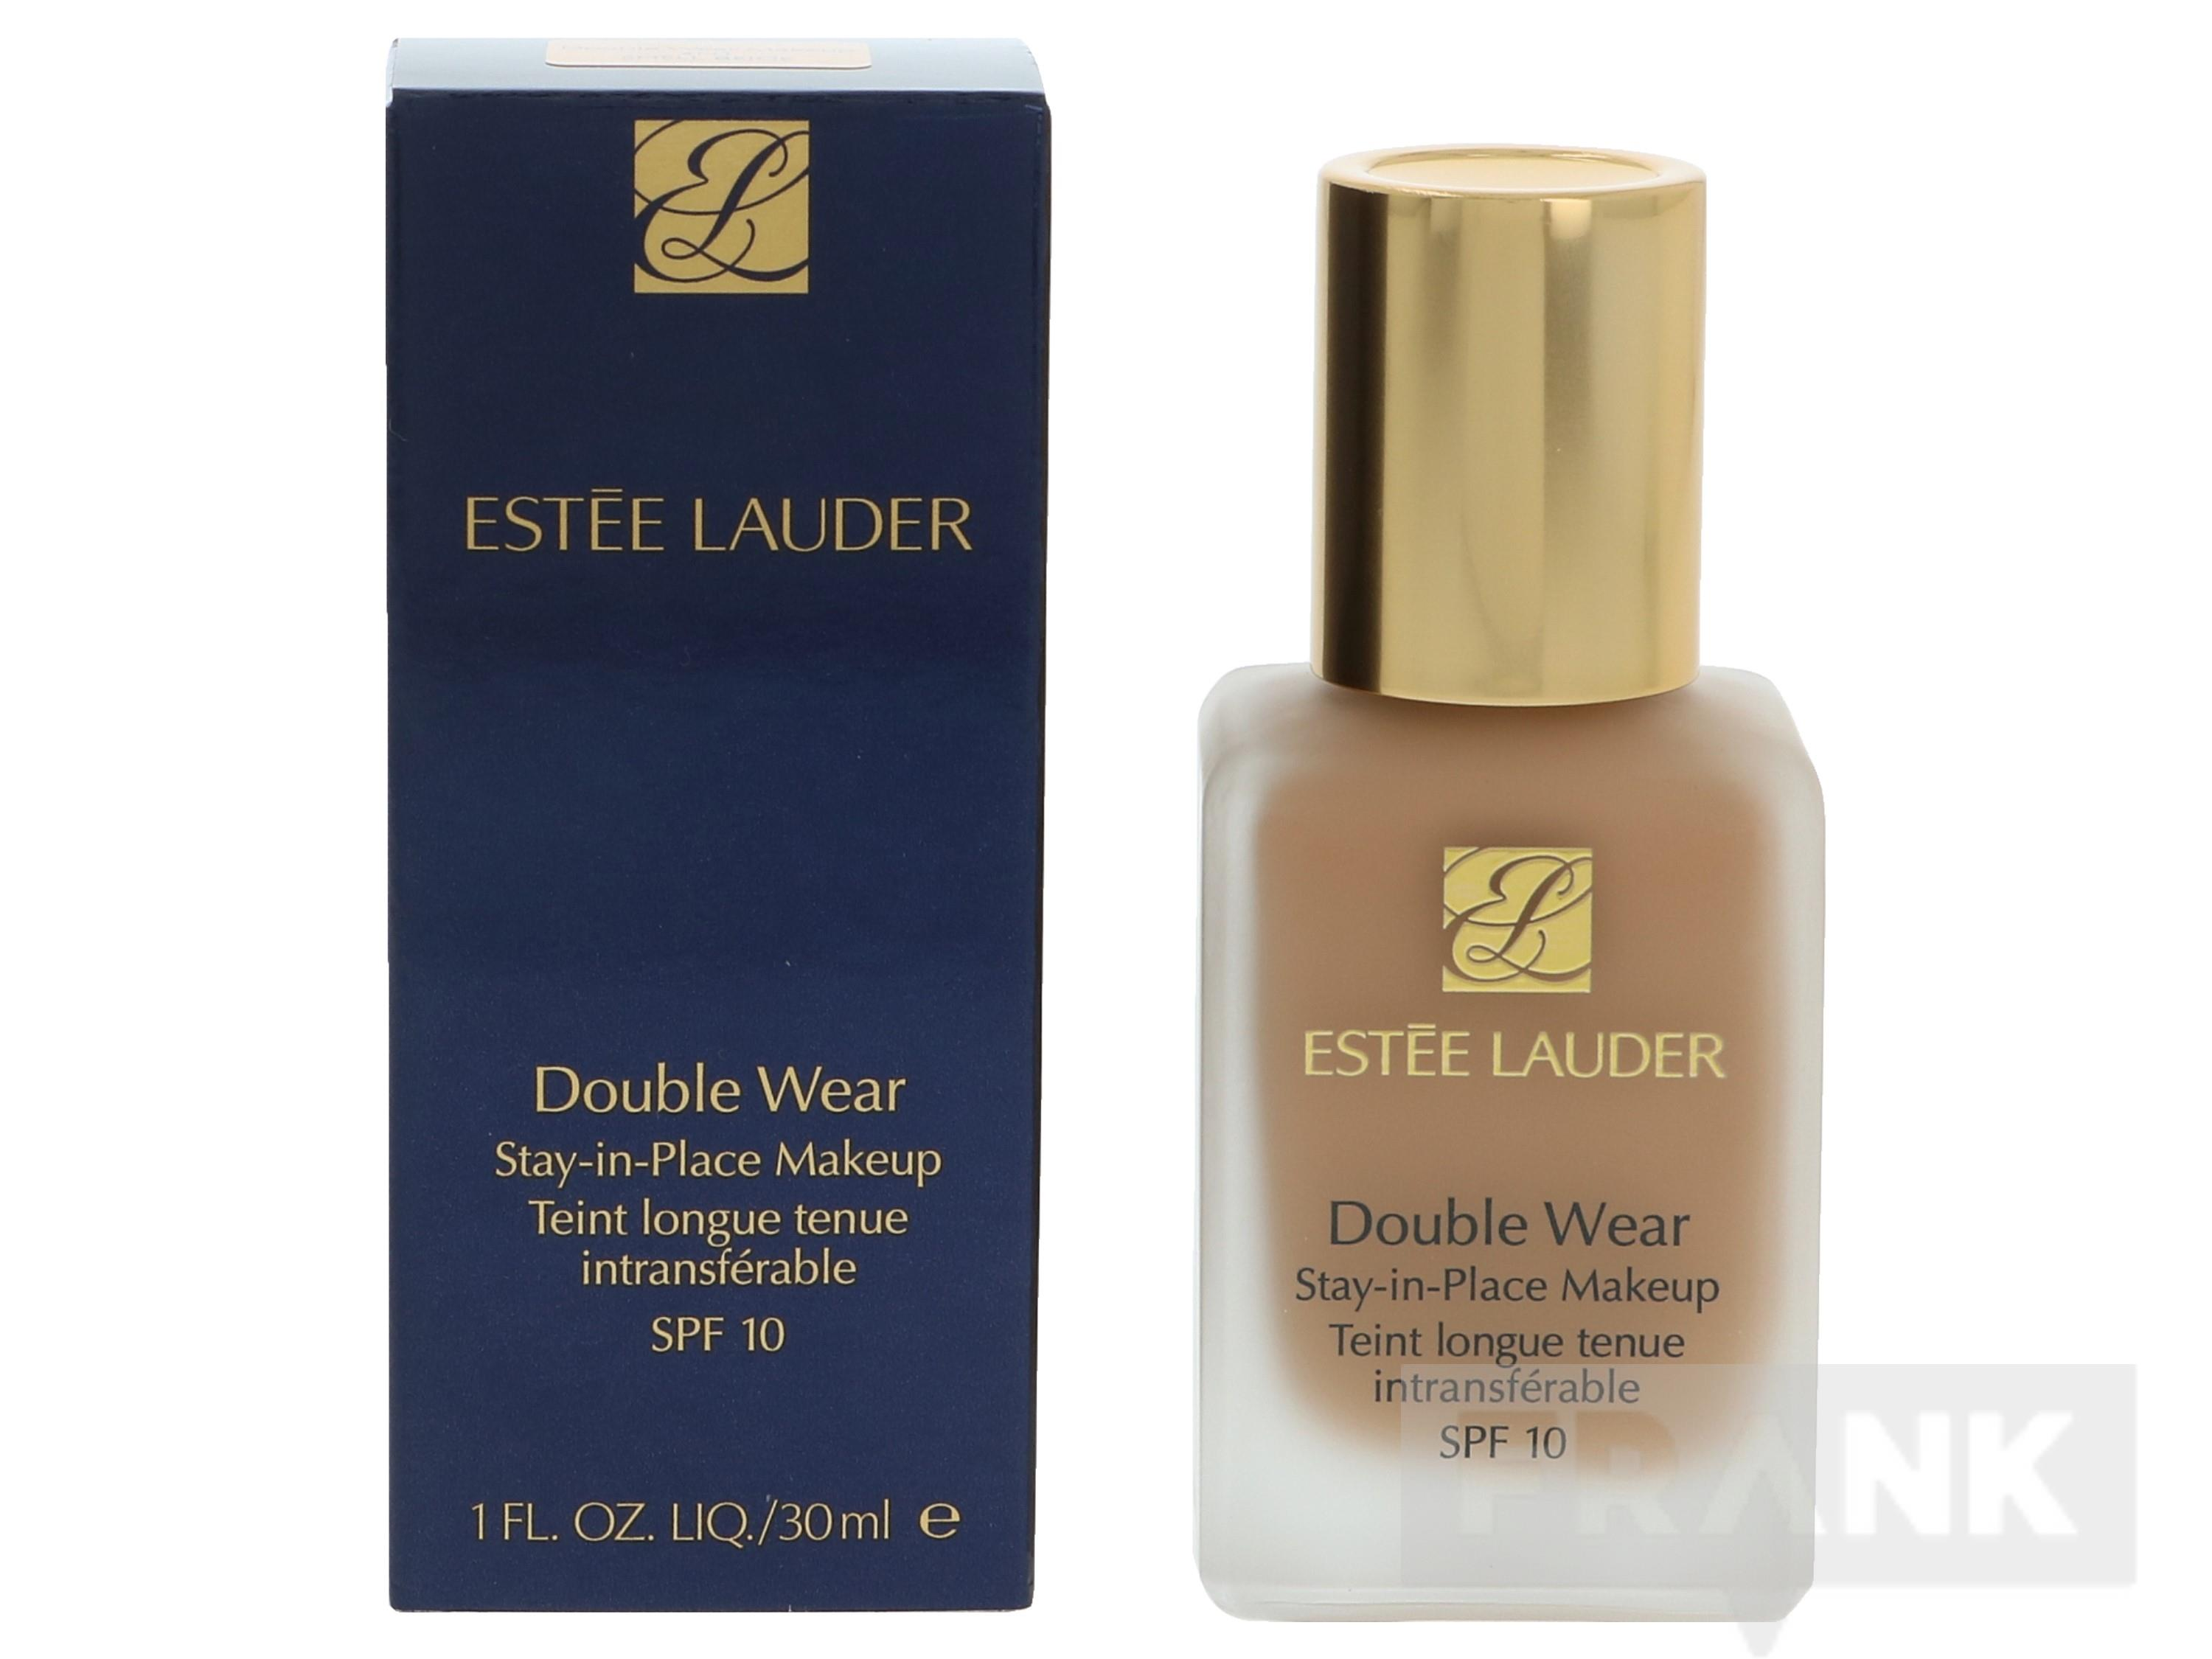 E.Lauder Double Wear Stay In Place Makeup SPF10 30ml